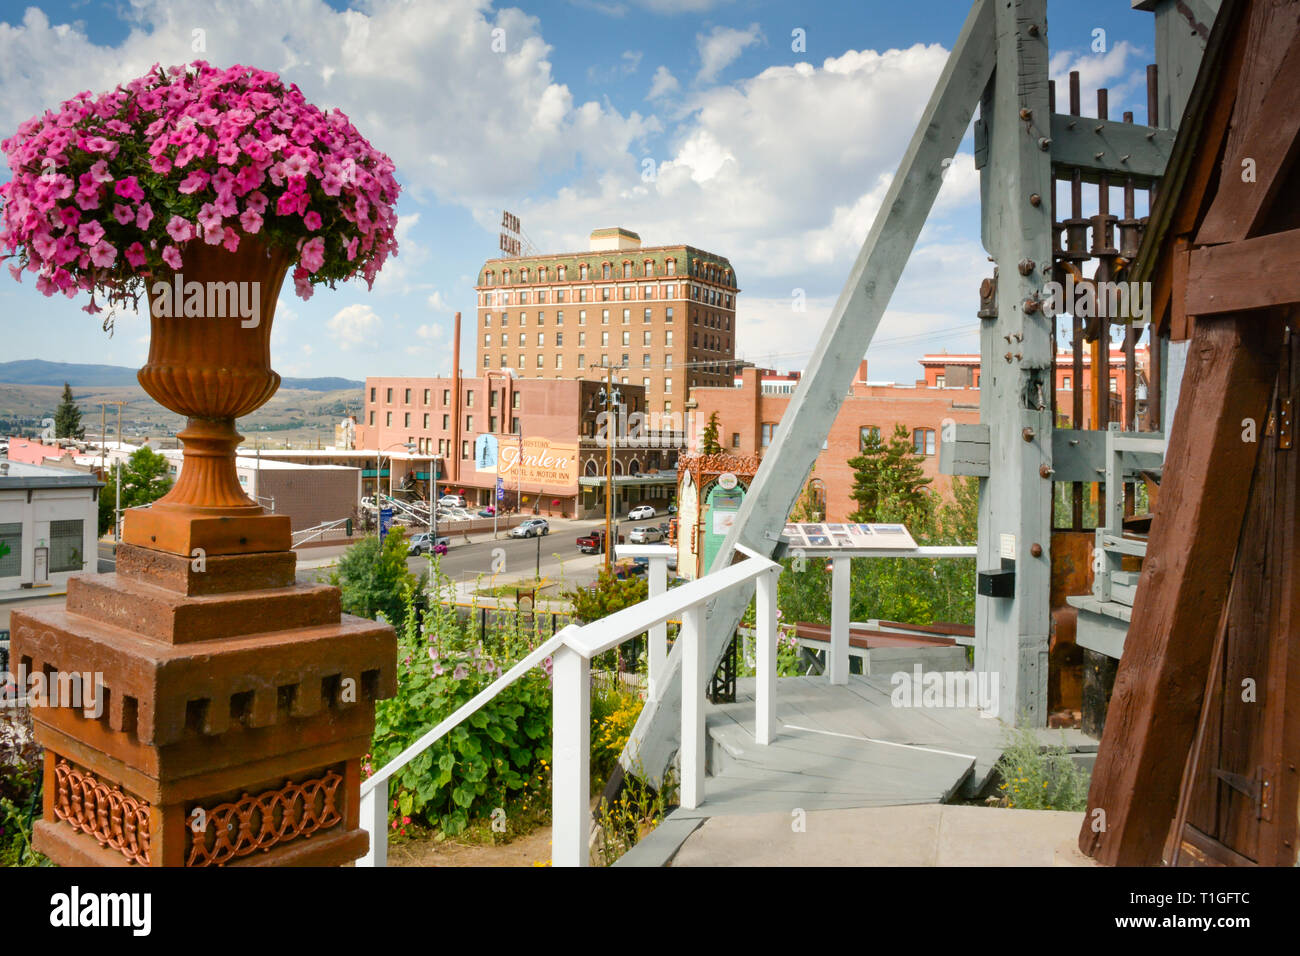 Overlooking downtown from a mine headframe over an old mine shaft, with an historical and commemorative display, with pink petunias in Butte, MT, USA - Stock Image